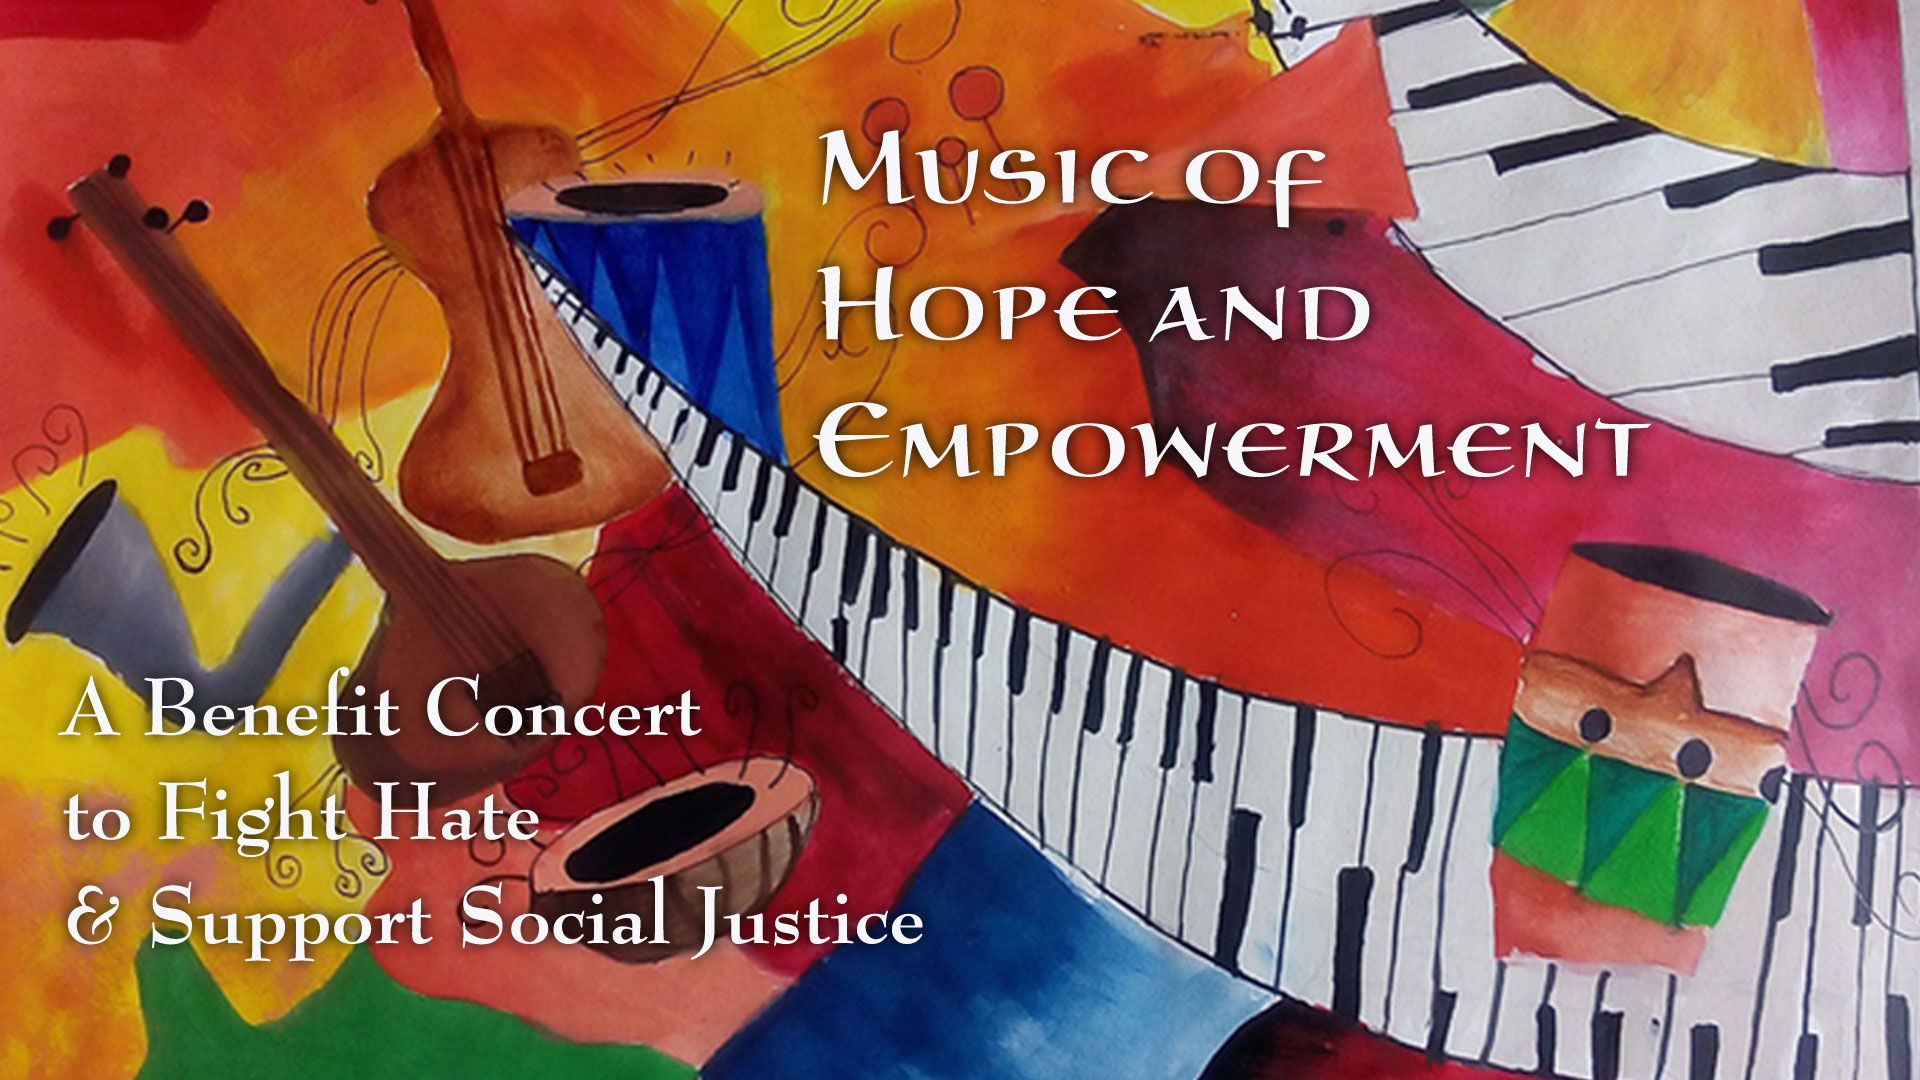 Music of Hope and Empowerment